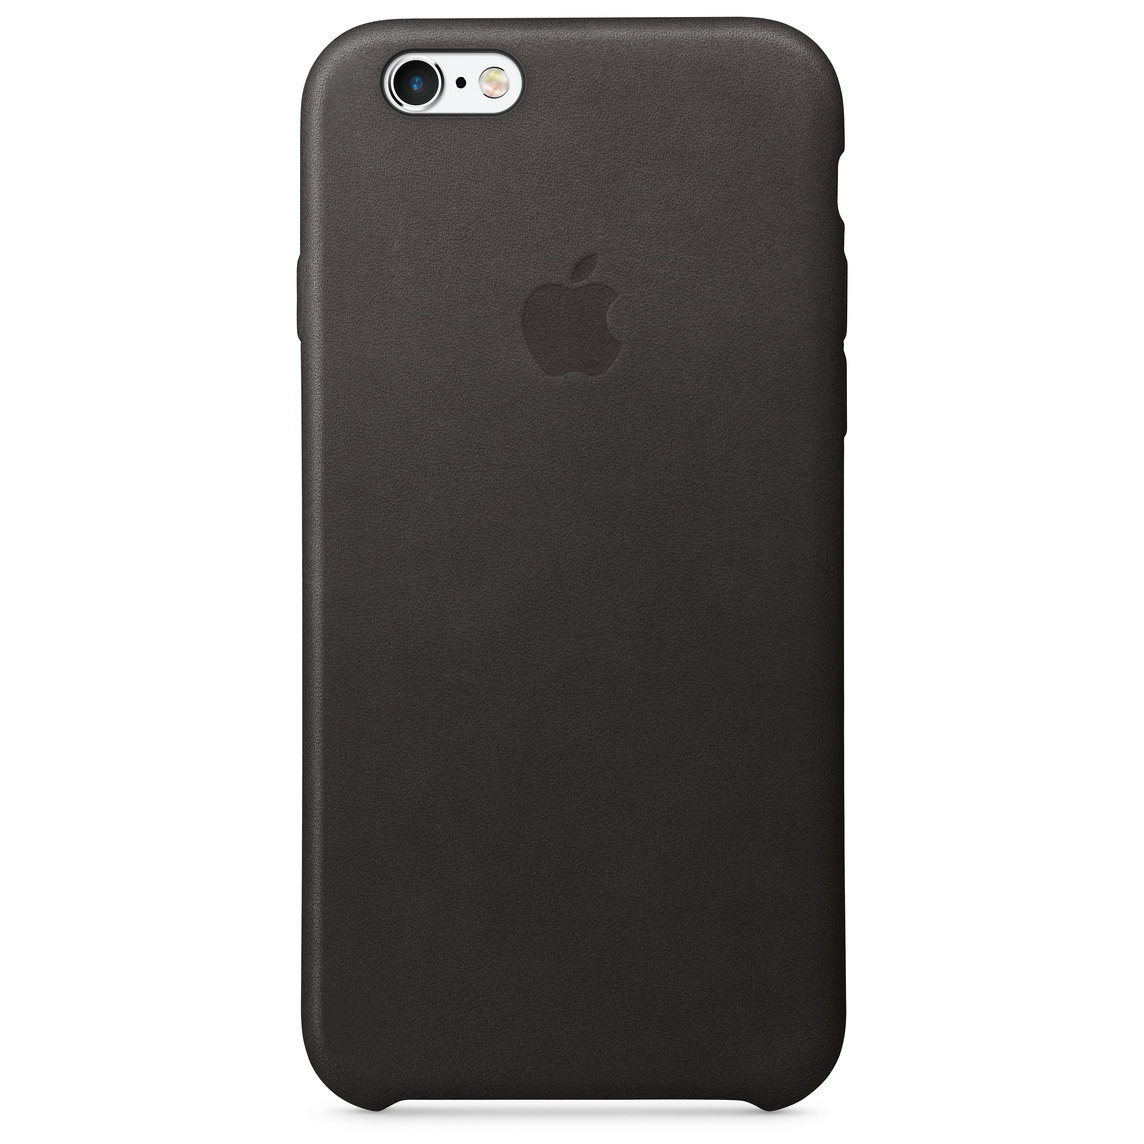 new products 7119c 0c25e iPhone 6 / 6s Leather Case - Black